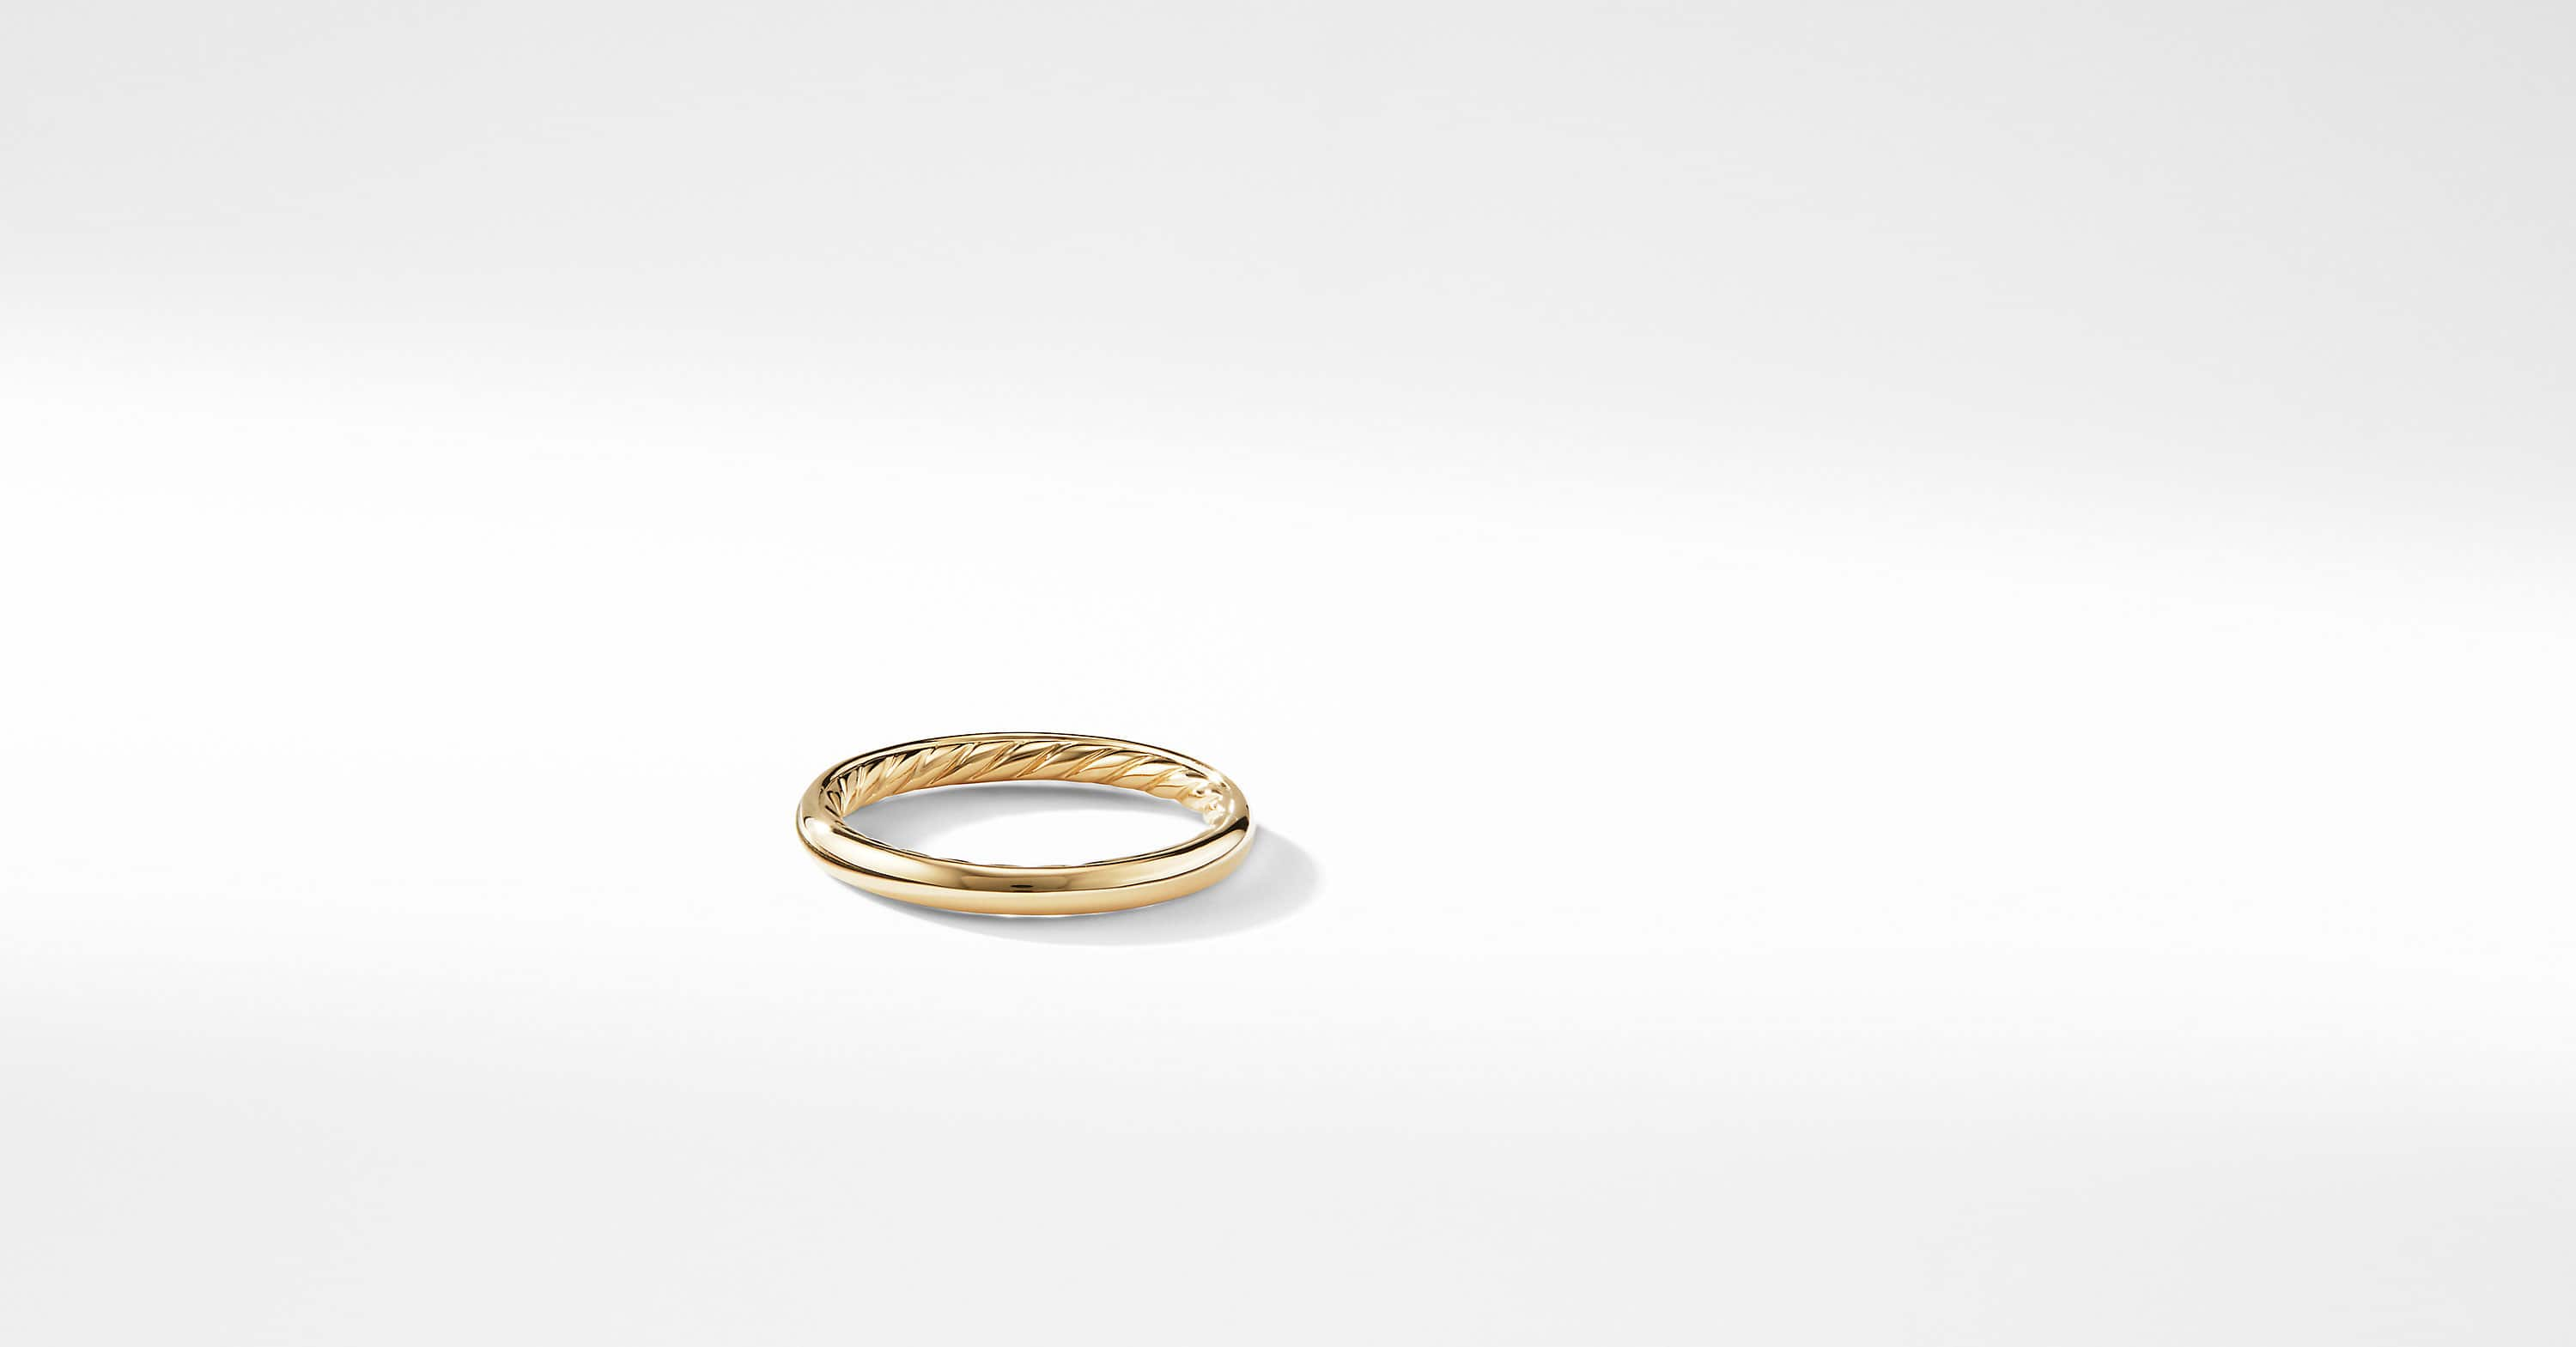 DY Eden Smooth Wedding Band in 18K Gold, 2.5mm